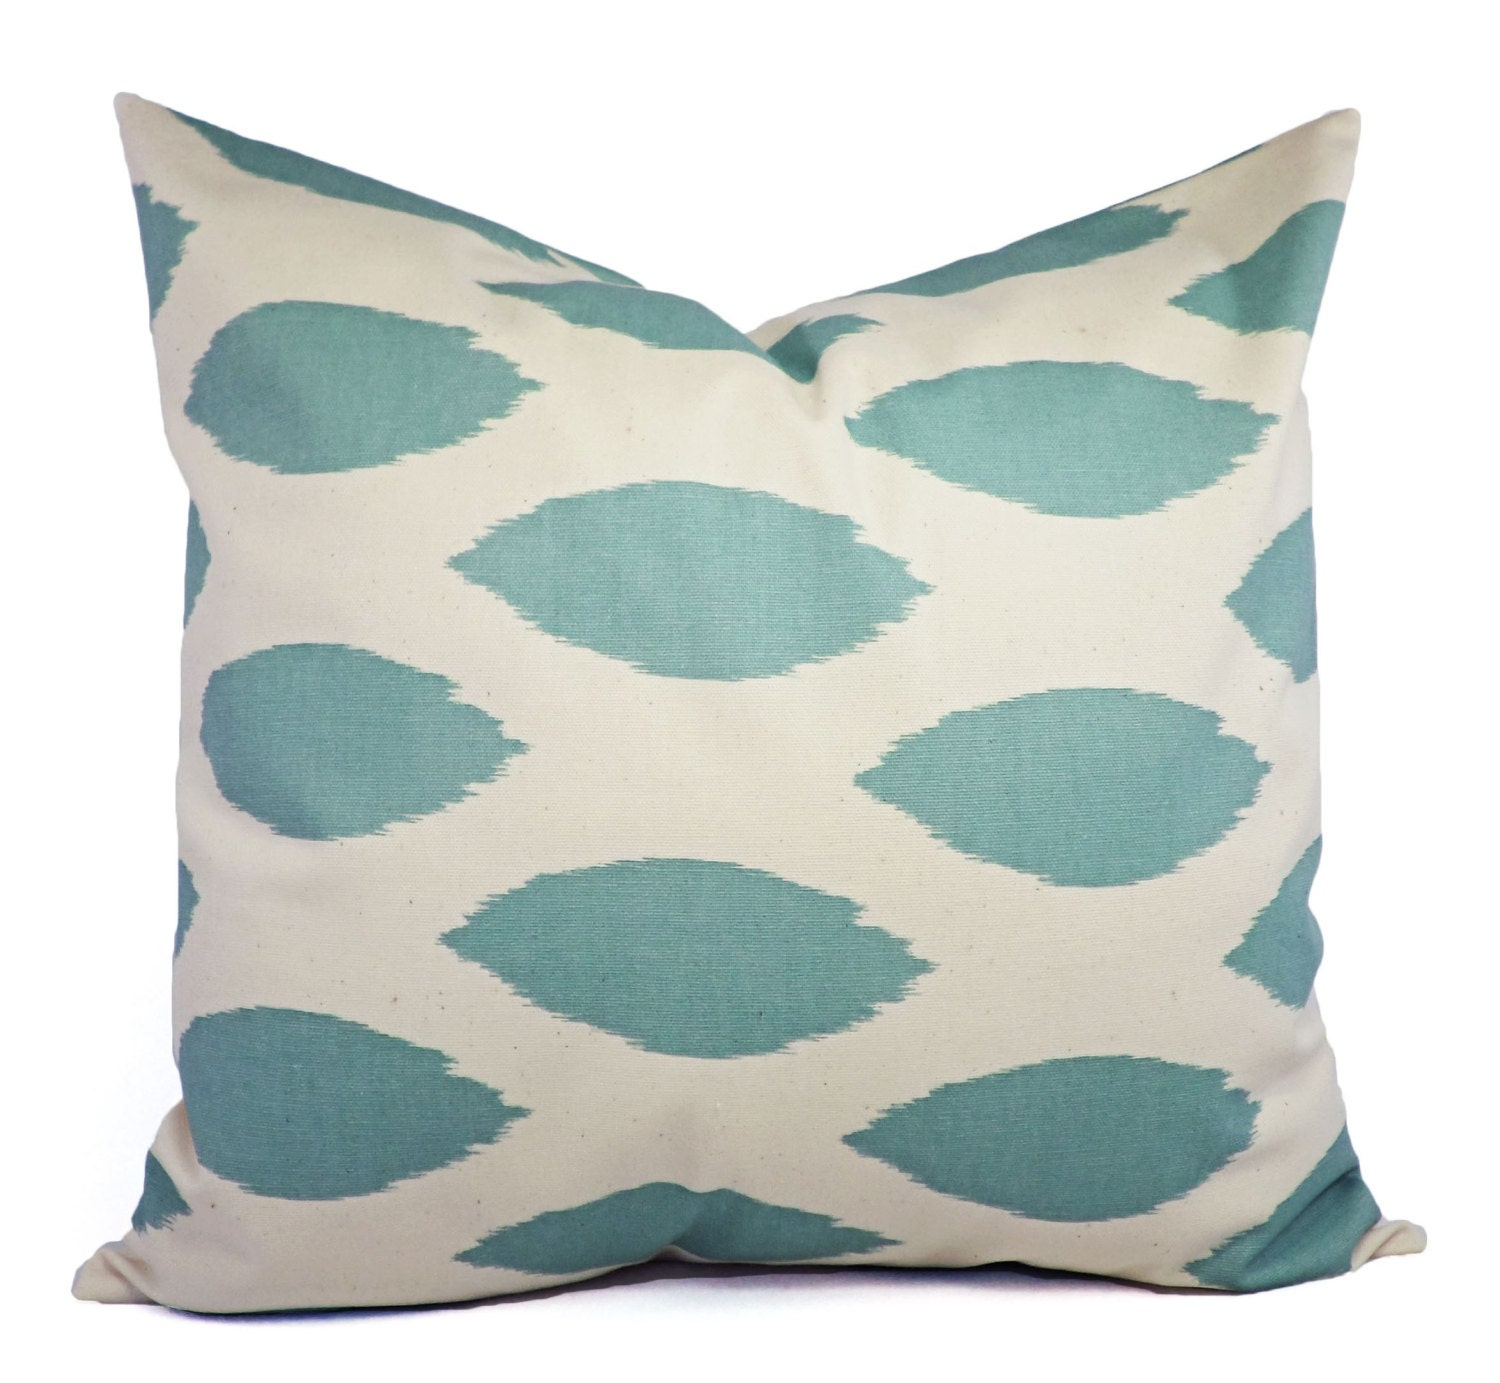 Spa Blue Throw Pillow Cover : Blue Pillow Cover Two Spa Blue Decorative Pillow Covers